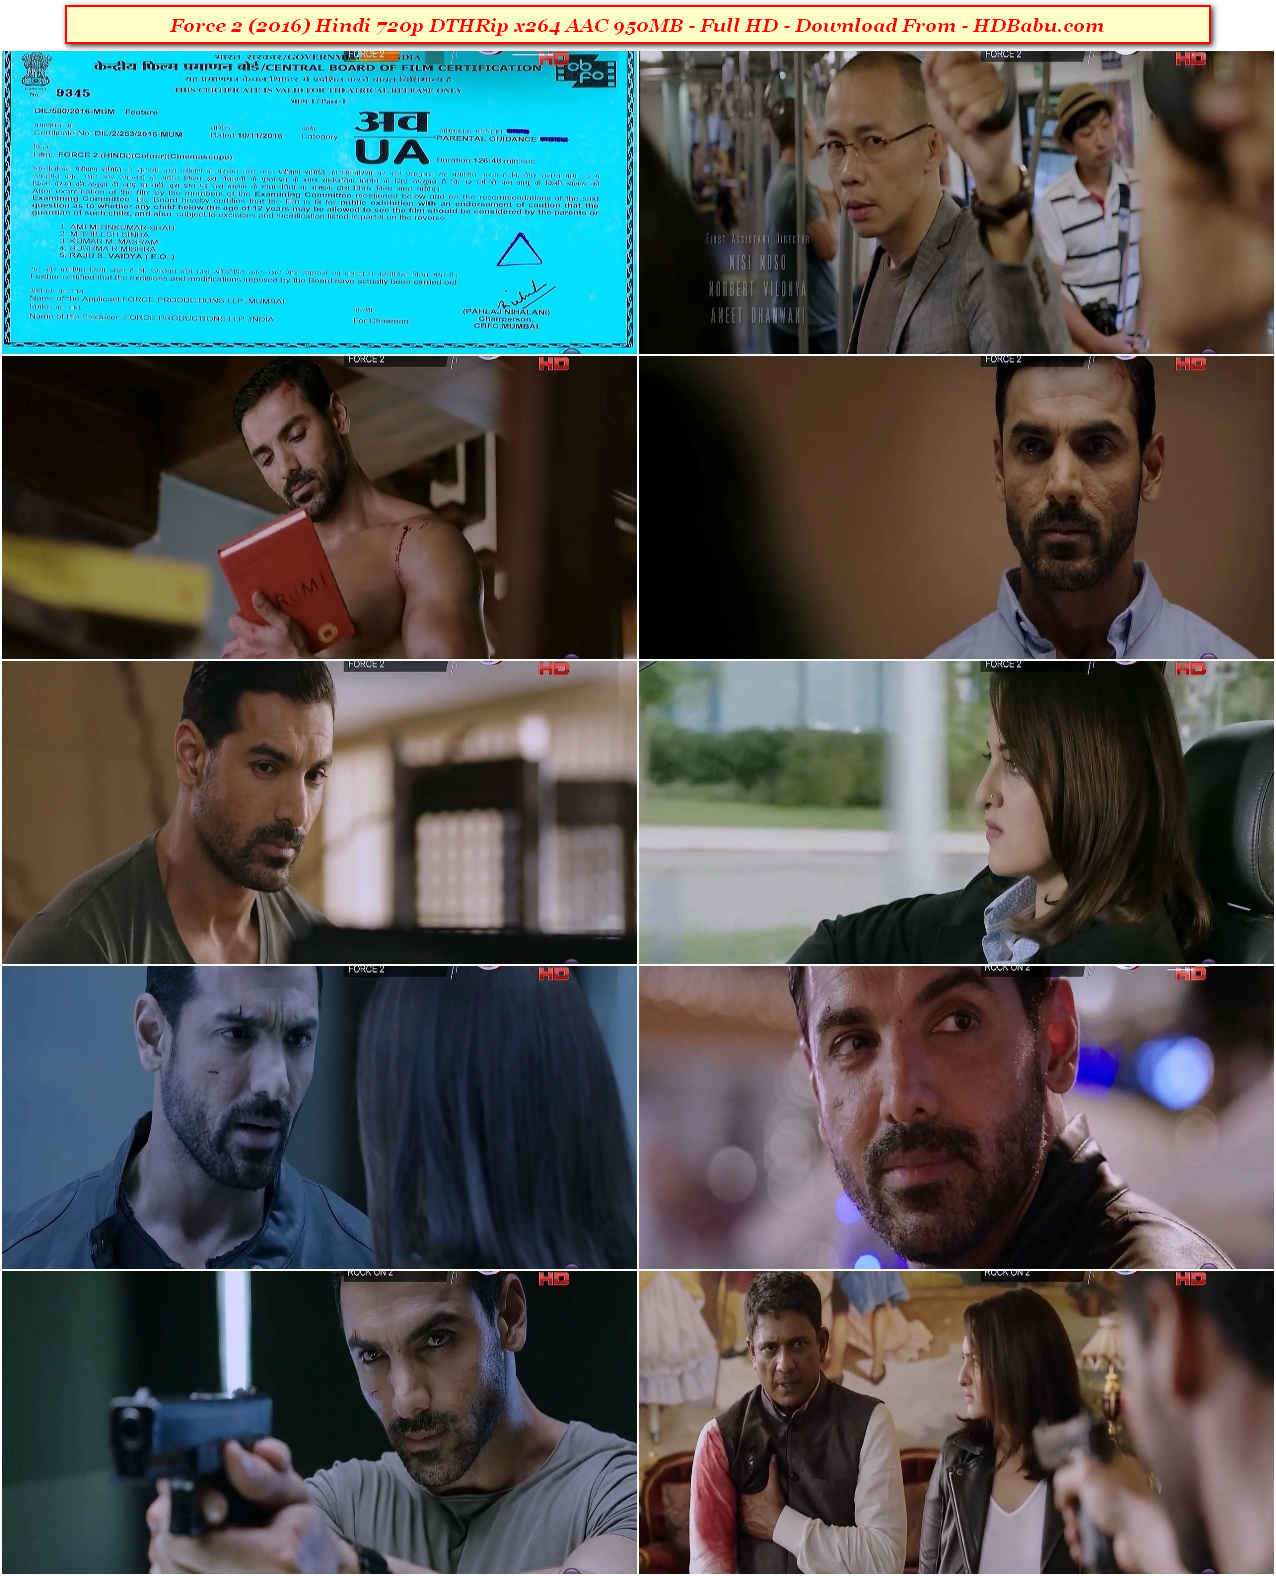 Force 2 Full Movie Download